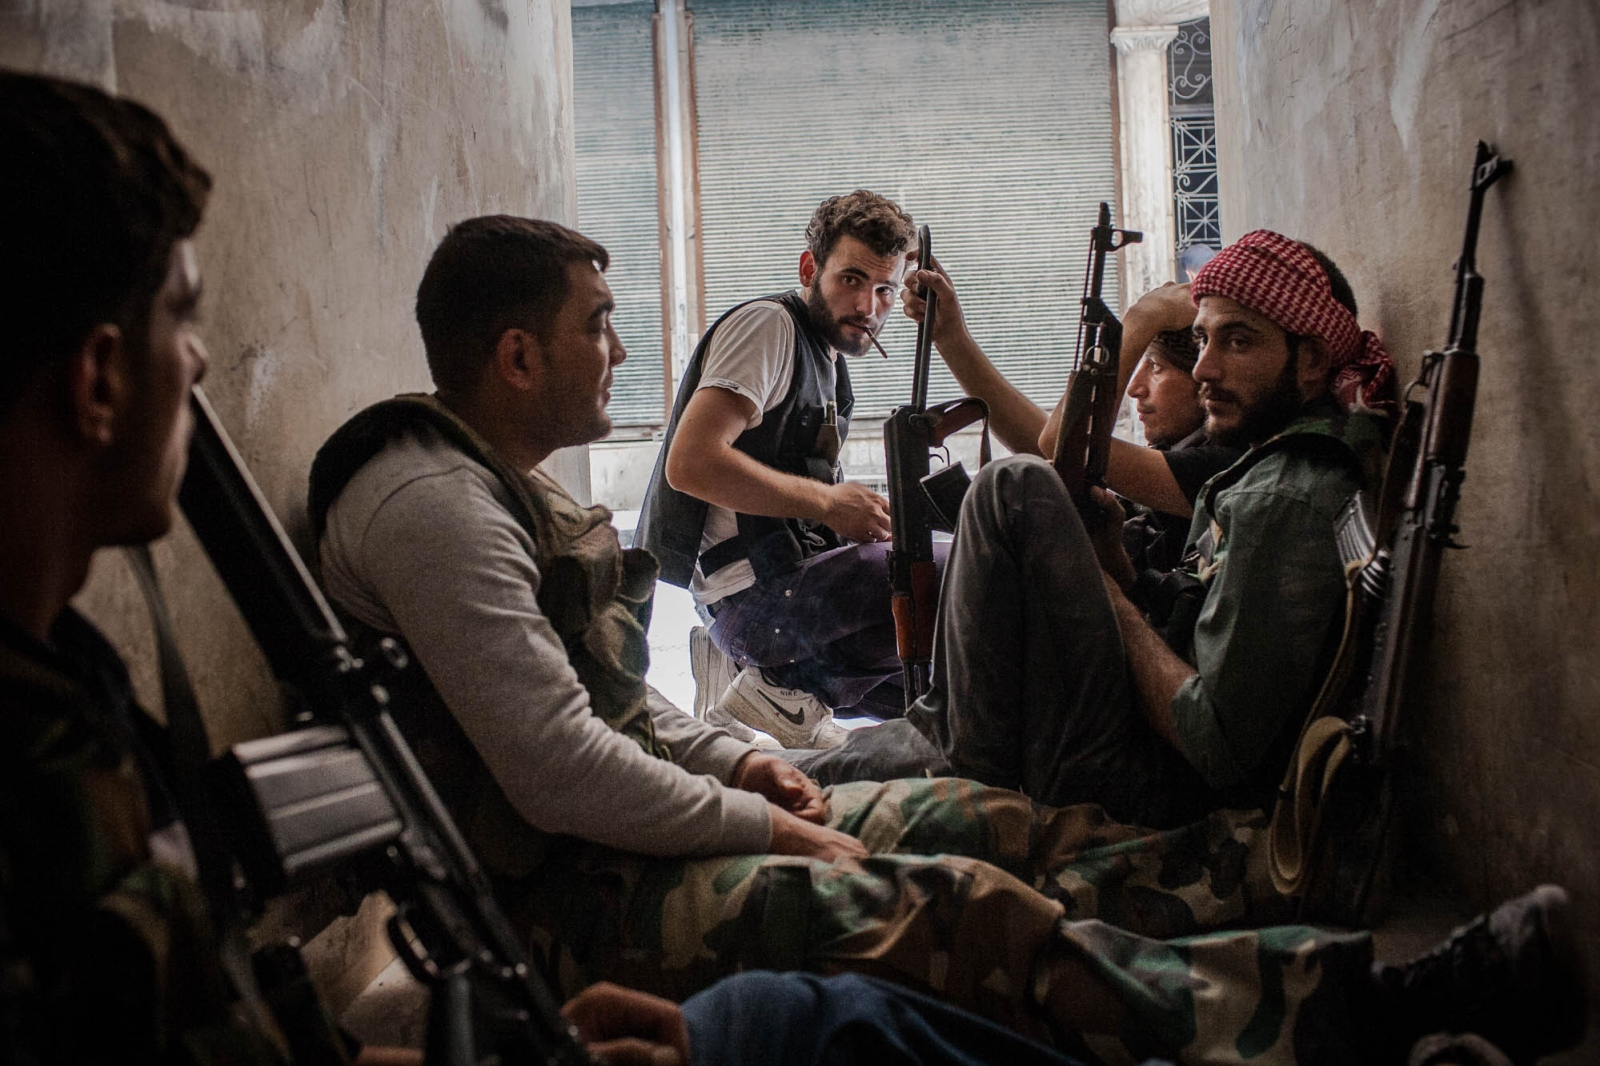 Fighters with the Free Syrian Army take cover from mortar shells in a hallway of a residential building on the frontline in the Salaheddine neighborhood of Aleppo, Syria, on August 8, 2012.